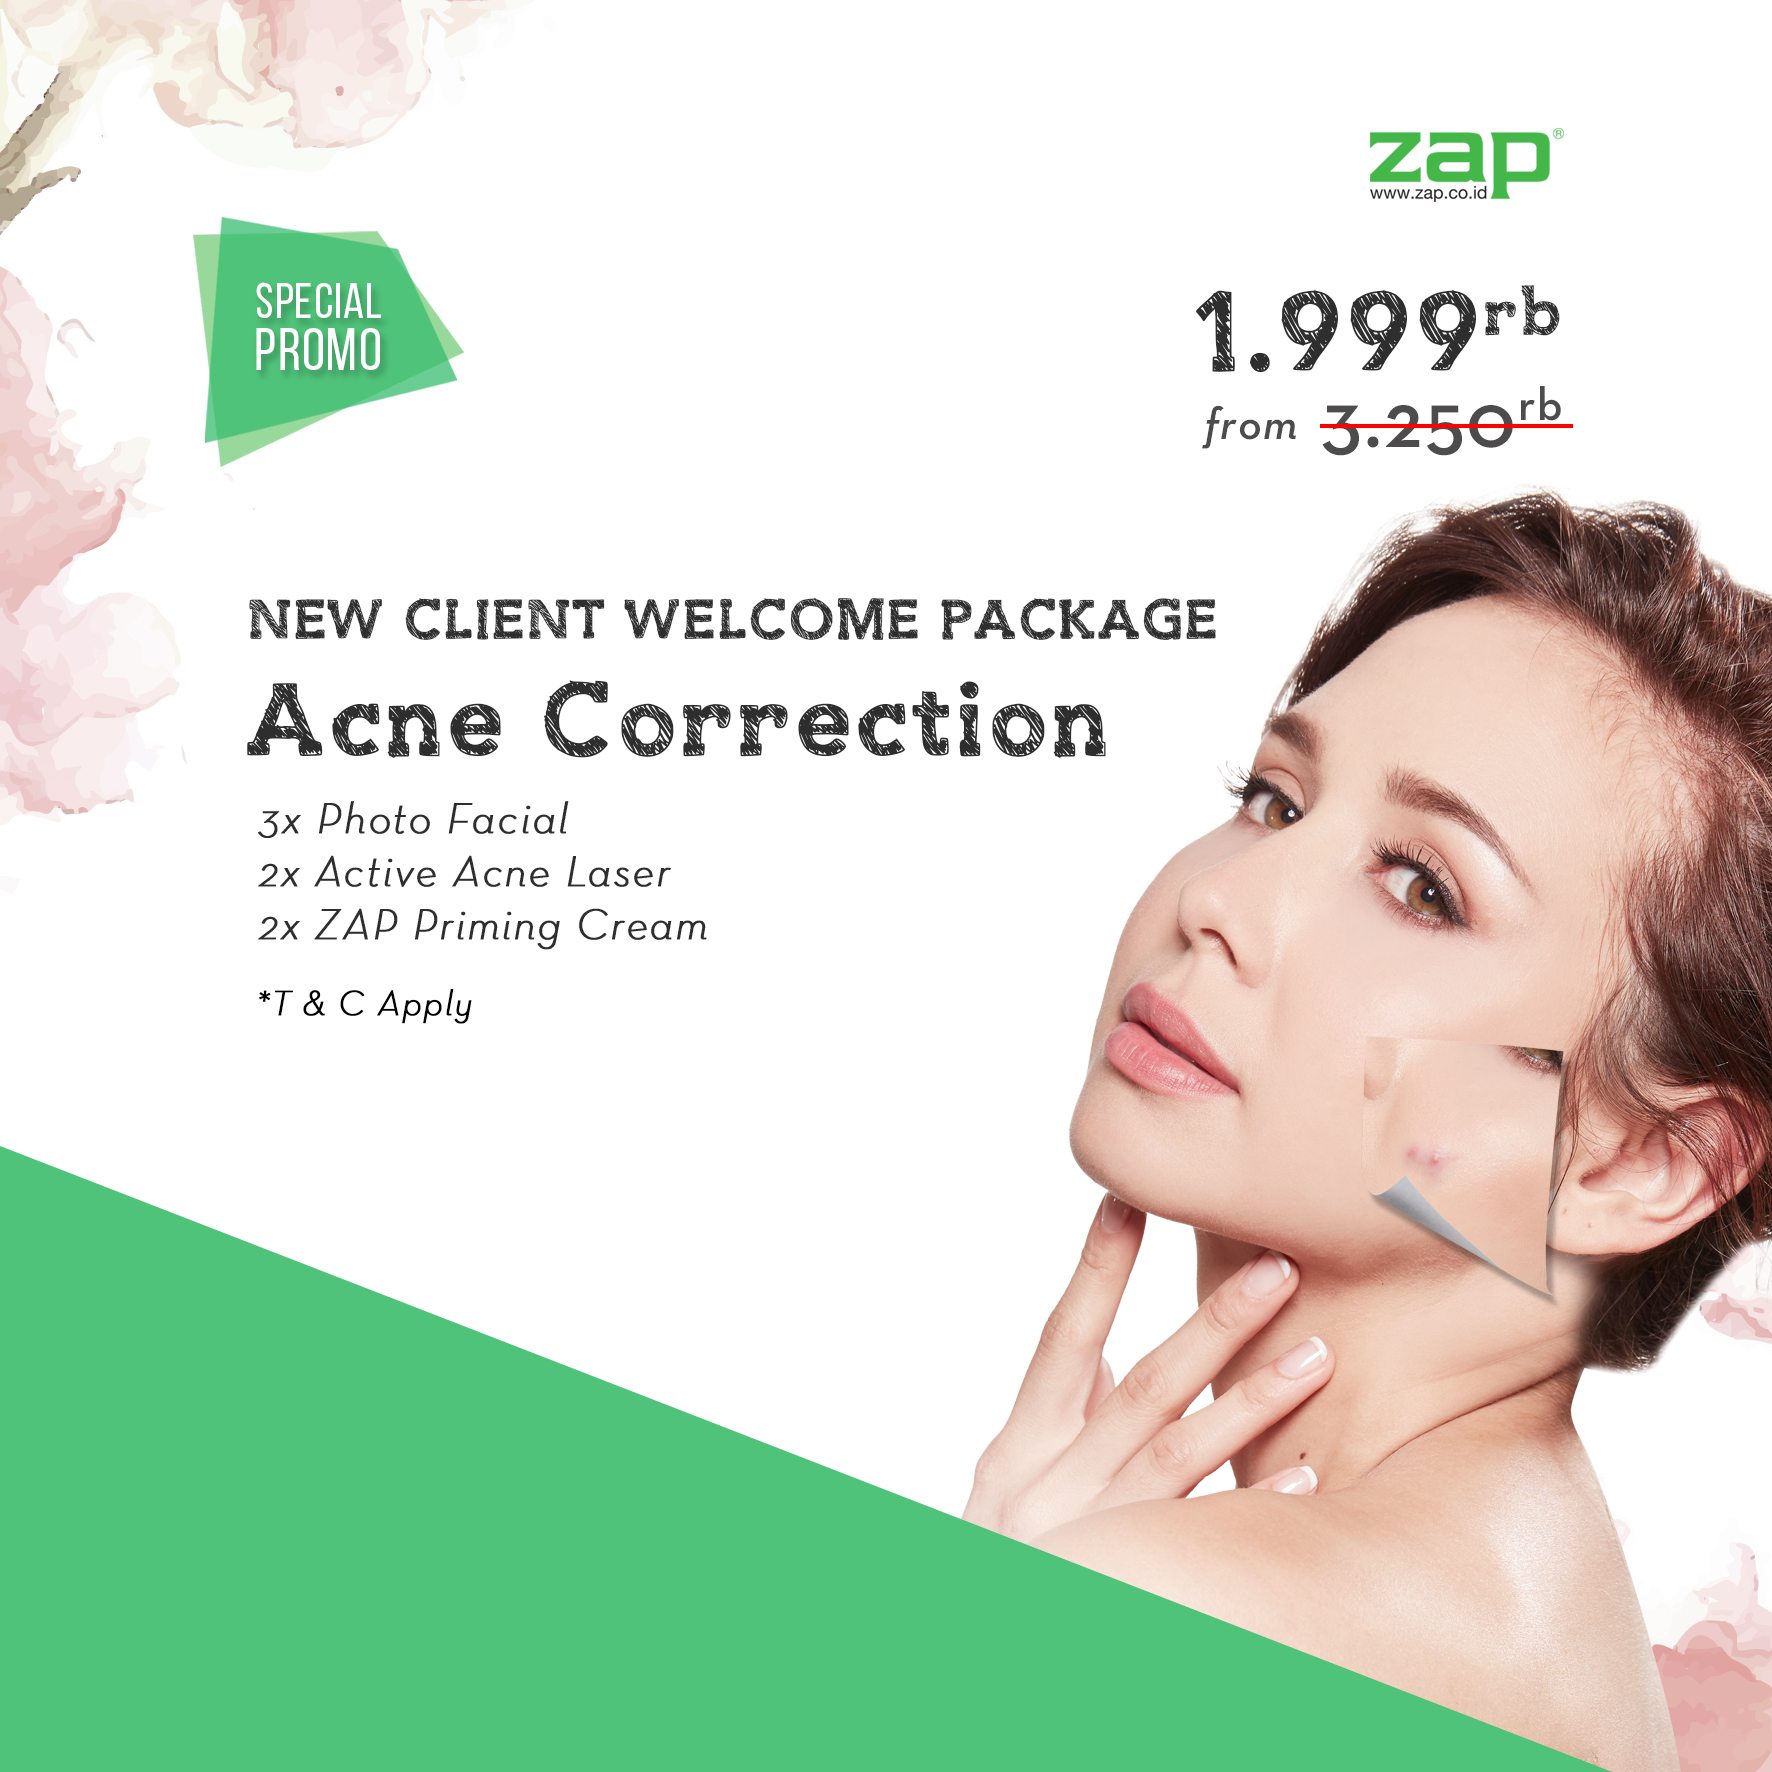 New Client Welcome Package - Acne Correction